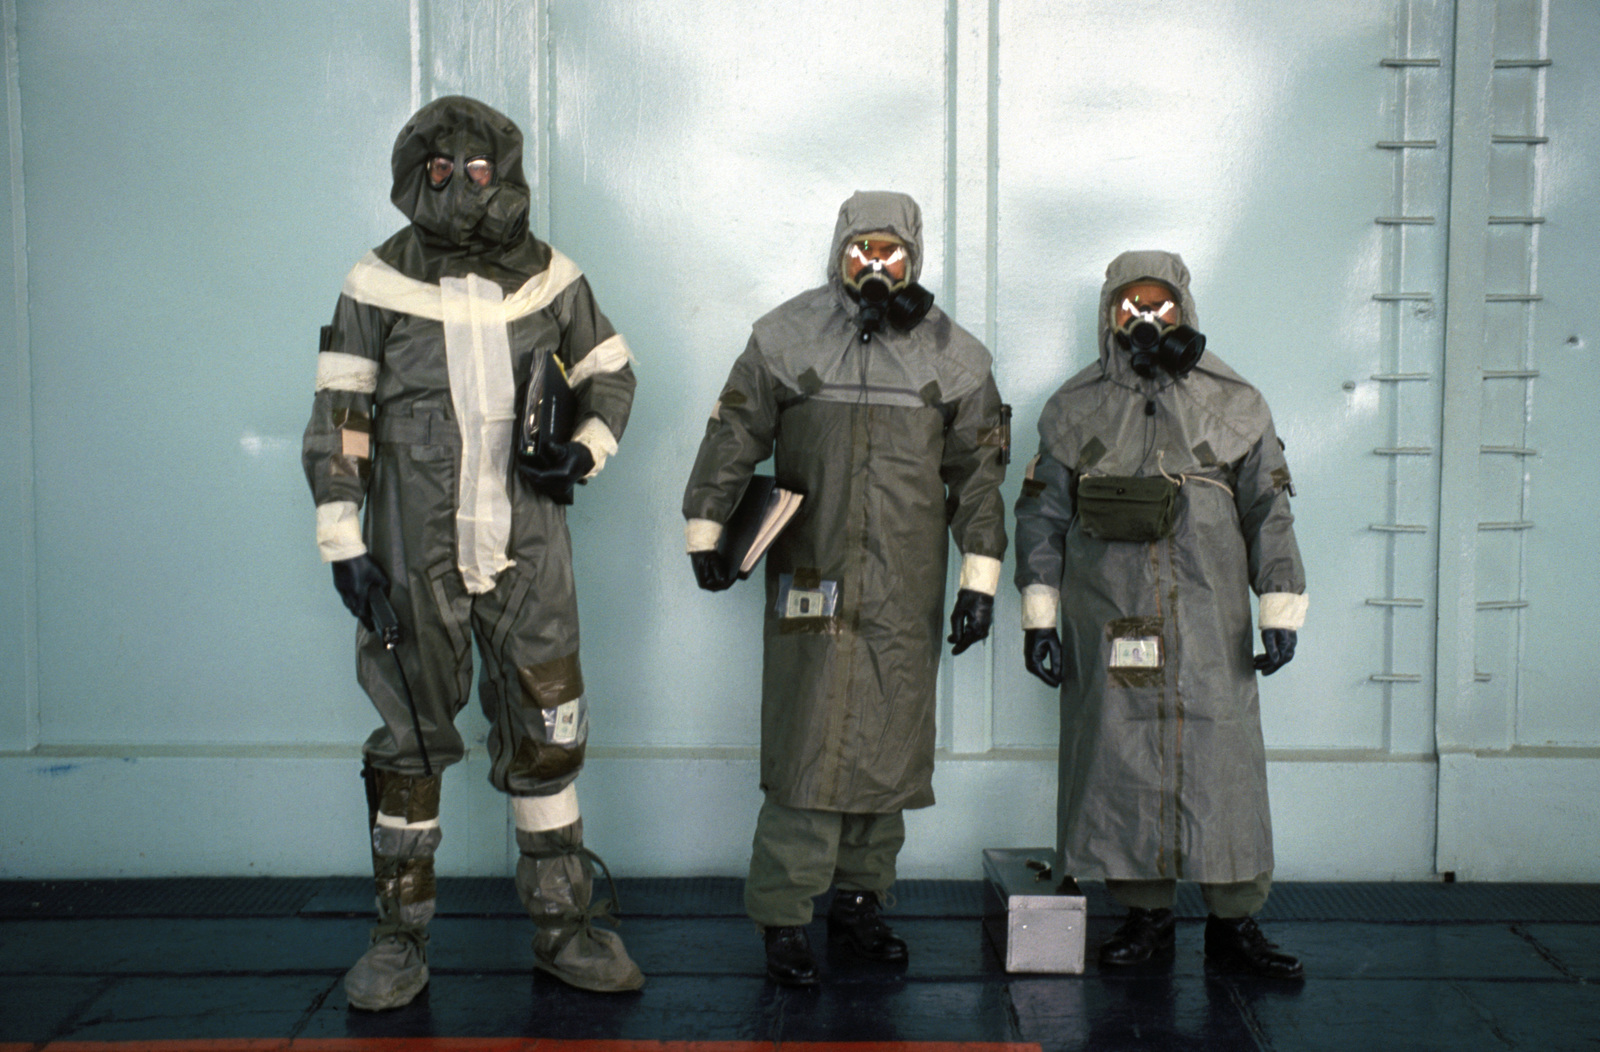 Members of the 52nd Tactical Fighter Wing wear various types of chemical warfare gear during Exercise SALTY DEMO'85.  SALTY DEMO'85 is an air base survivability exercise evaluating passive and active defenses, aircraft operation and generation, and base recovery systems